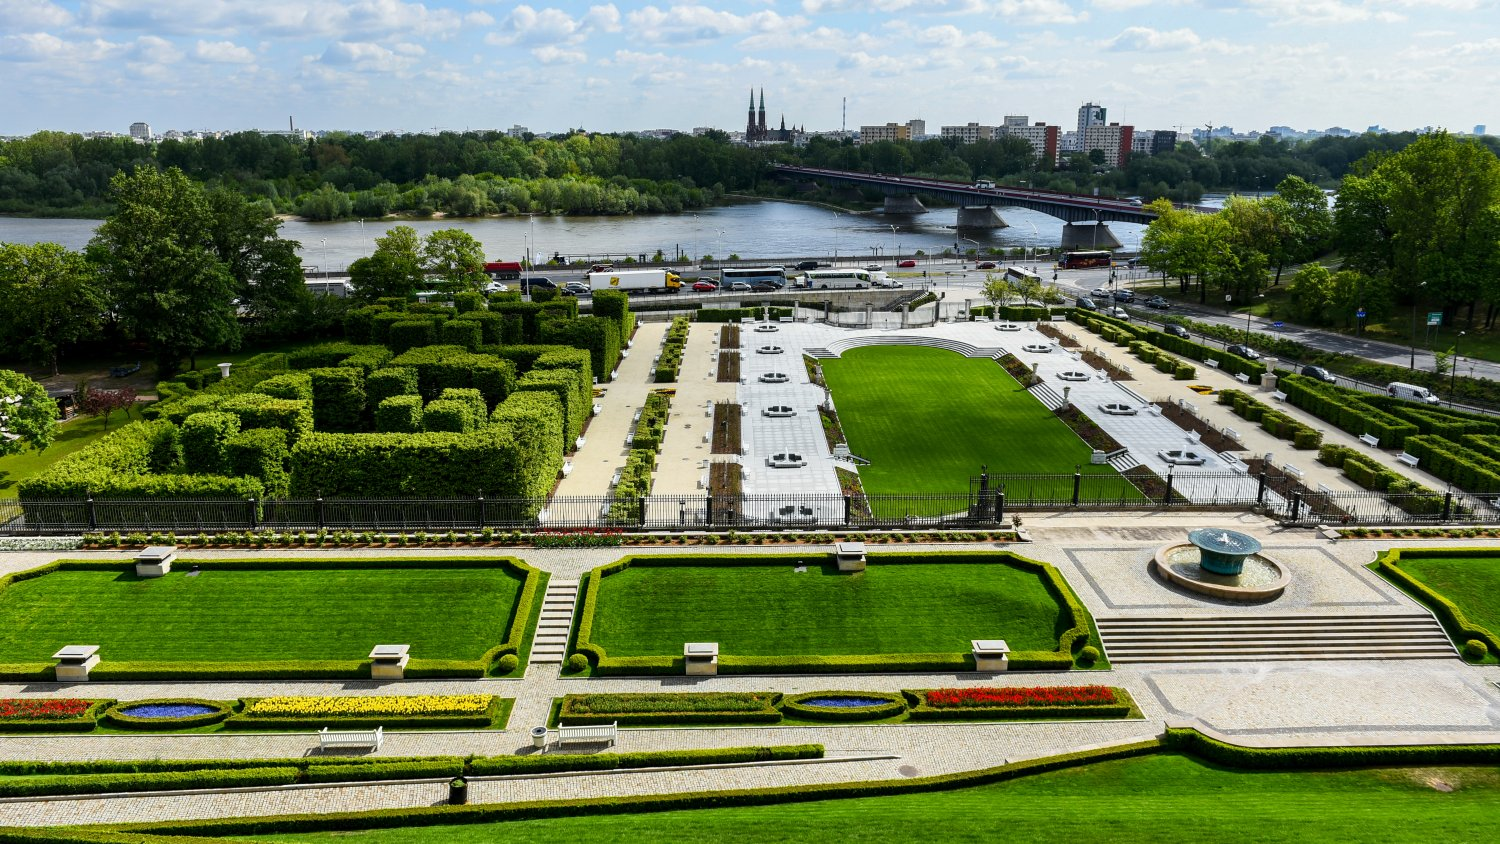 View of the gardens from the Royal Castle by Marcin Kmiecinski